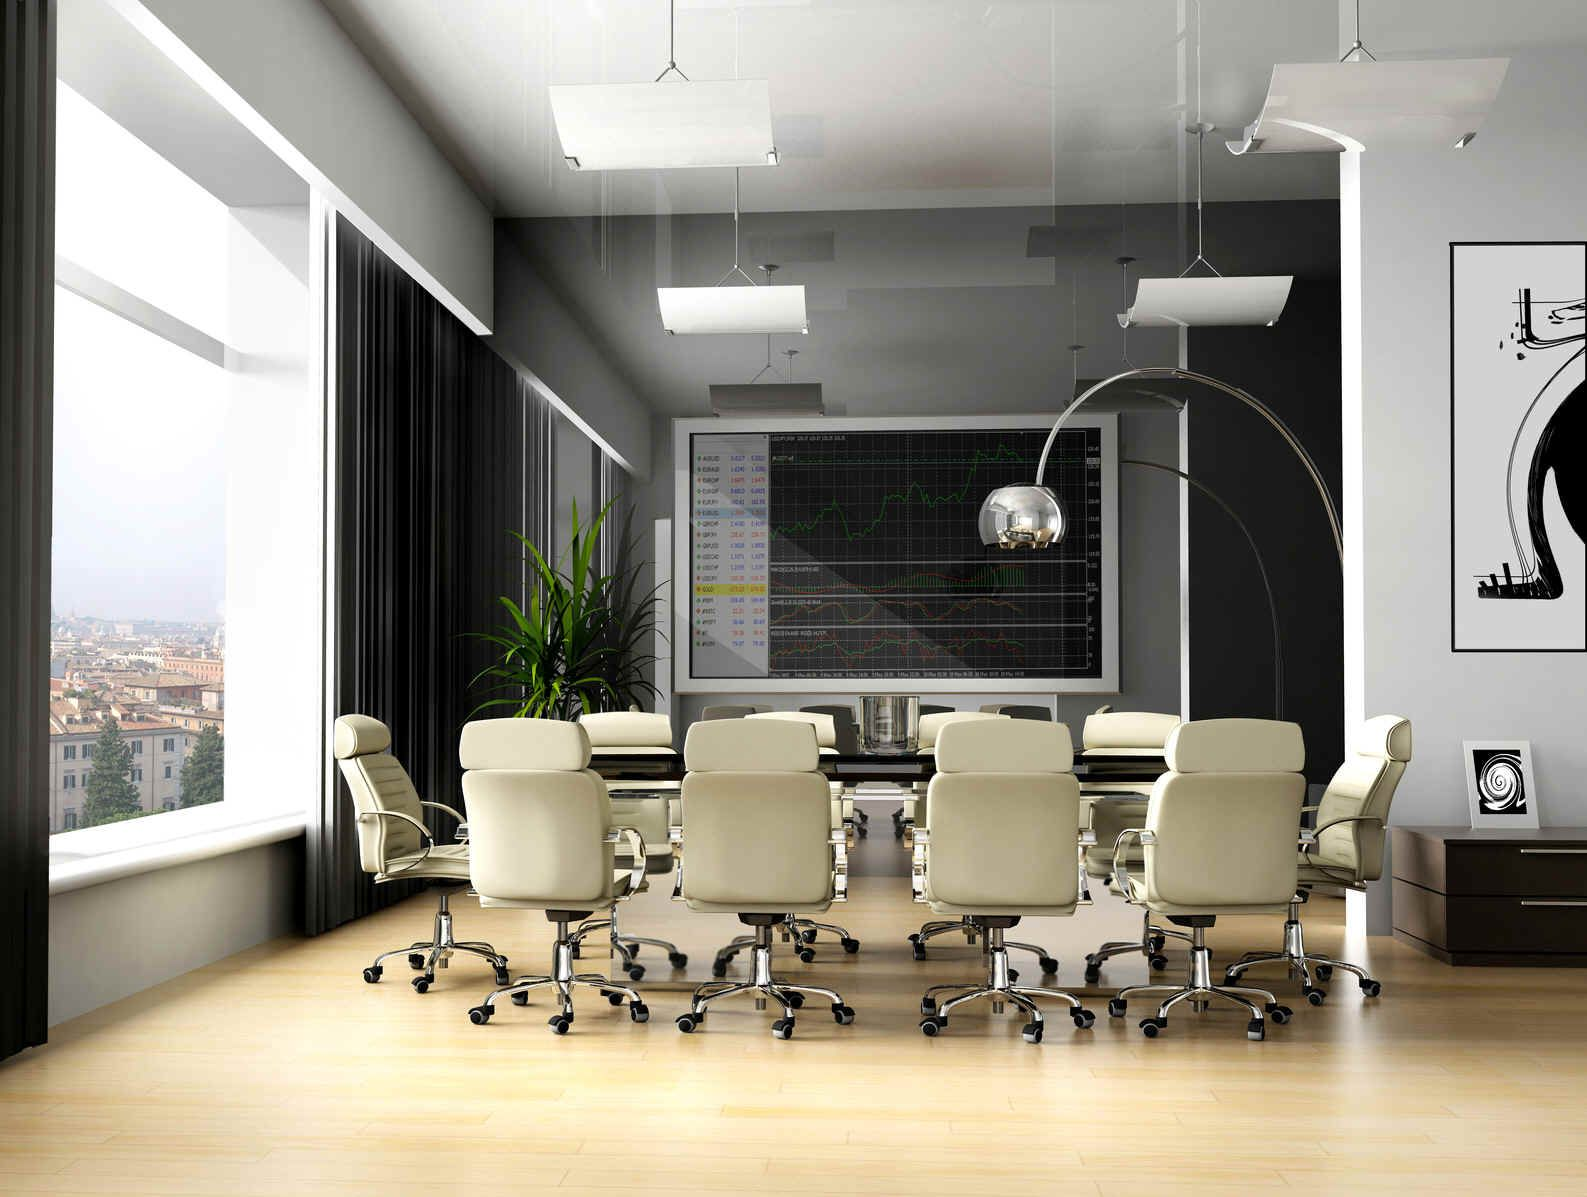 cool office decorations. Office workspace The Most Inspiring Decoration Designs  Corporate office